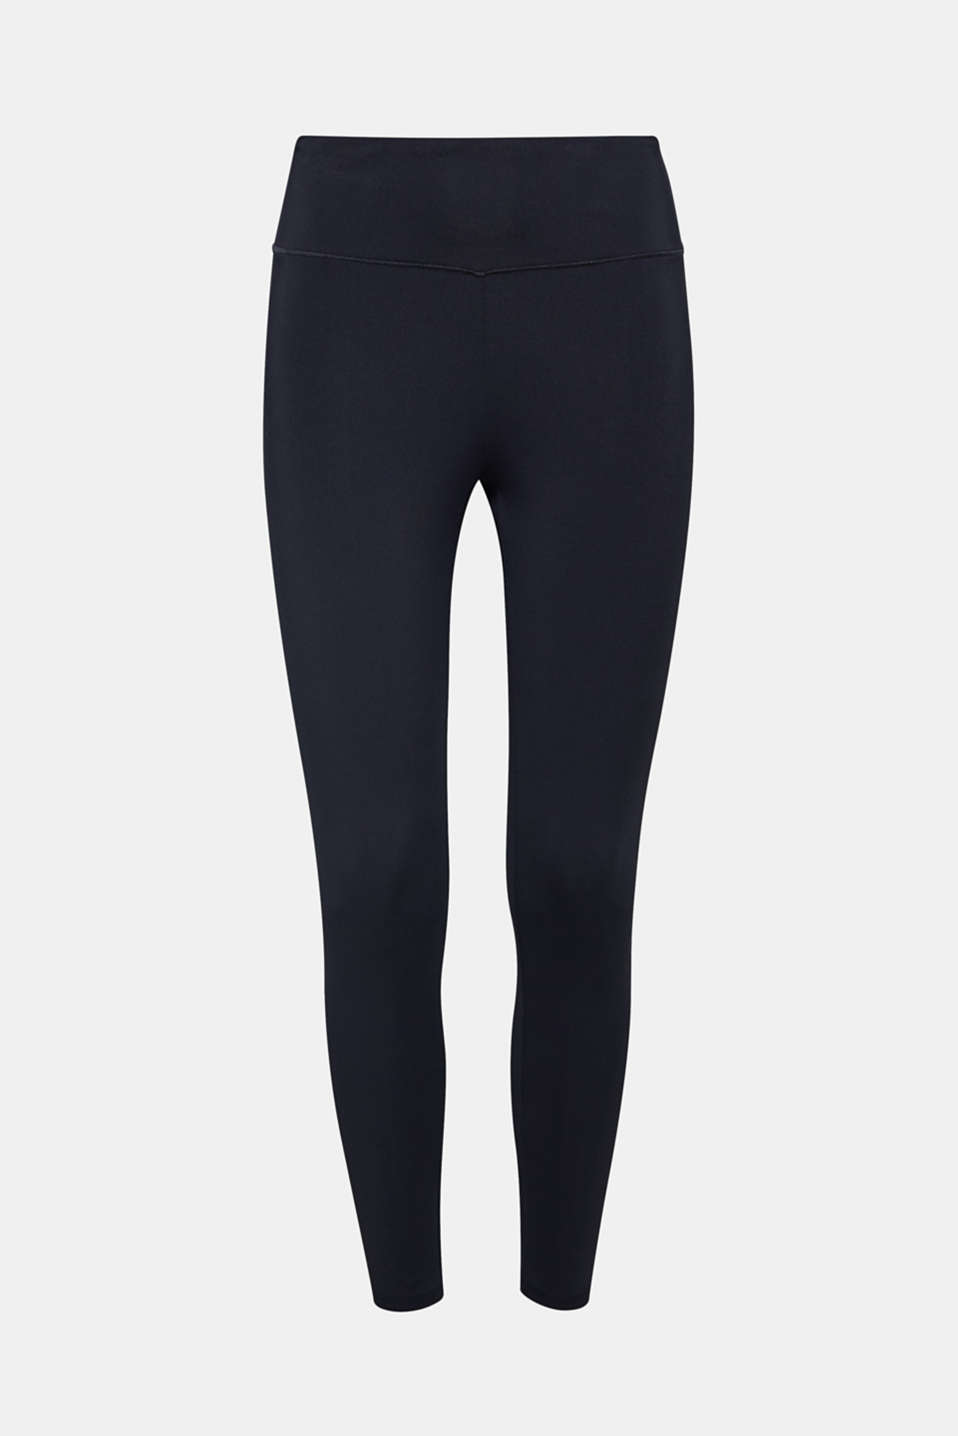 The reflective logo print and functional fabric make these trousers a must-have for sport freaks!